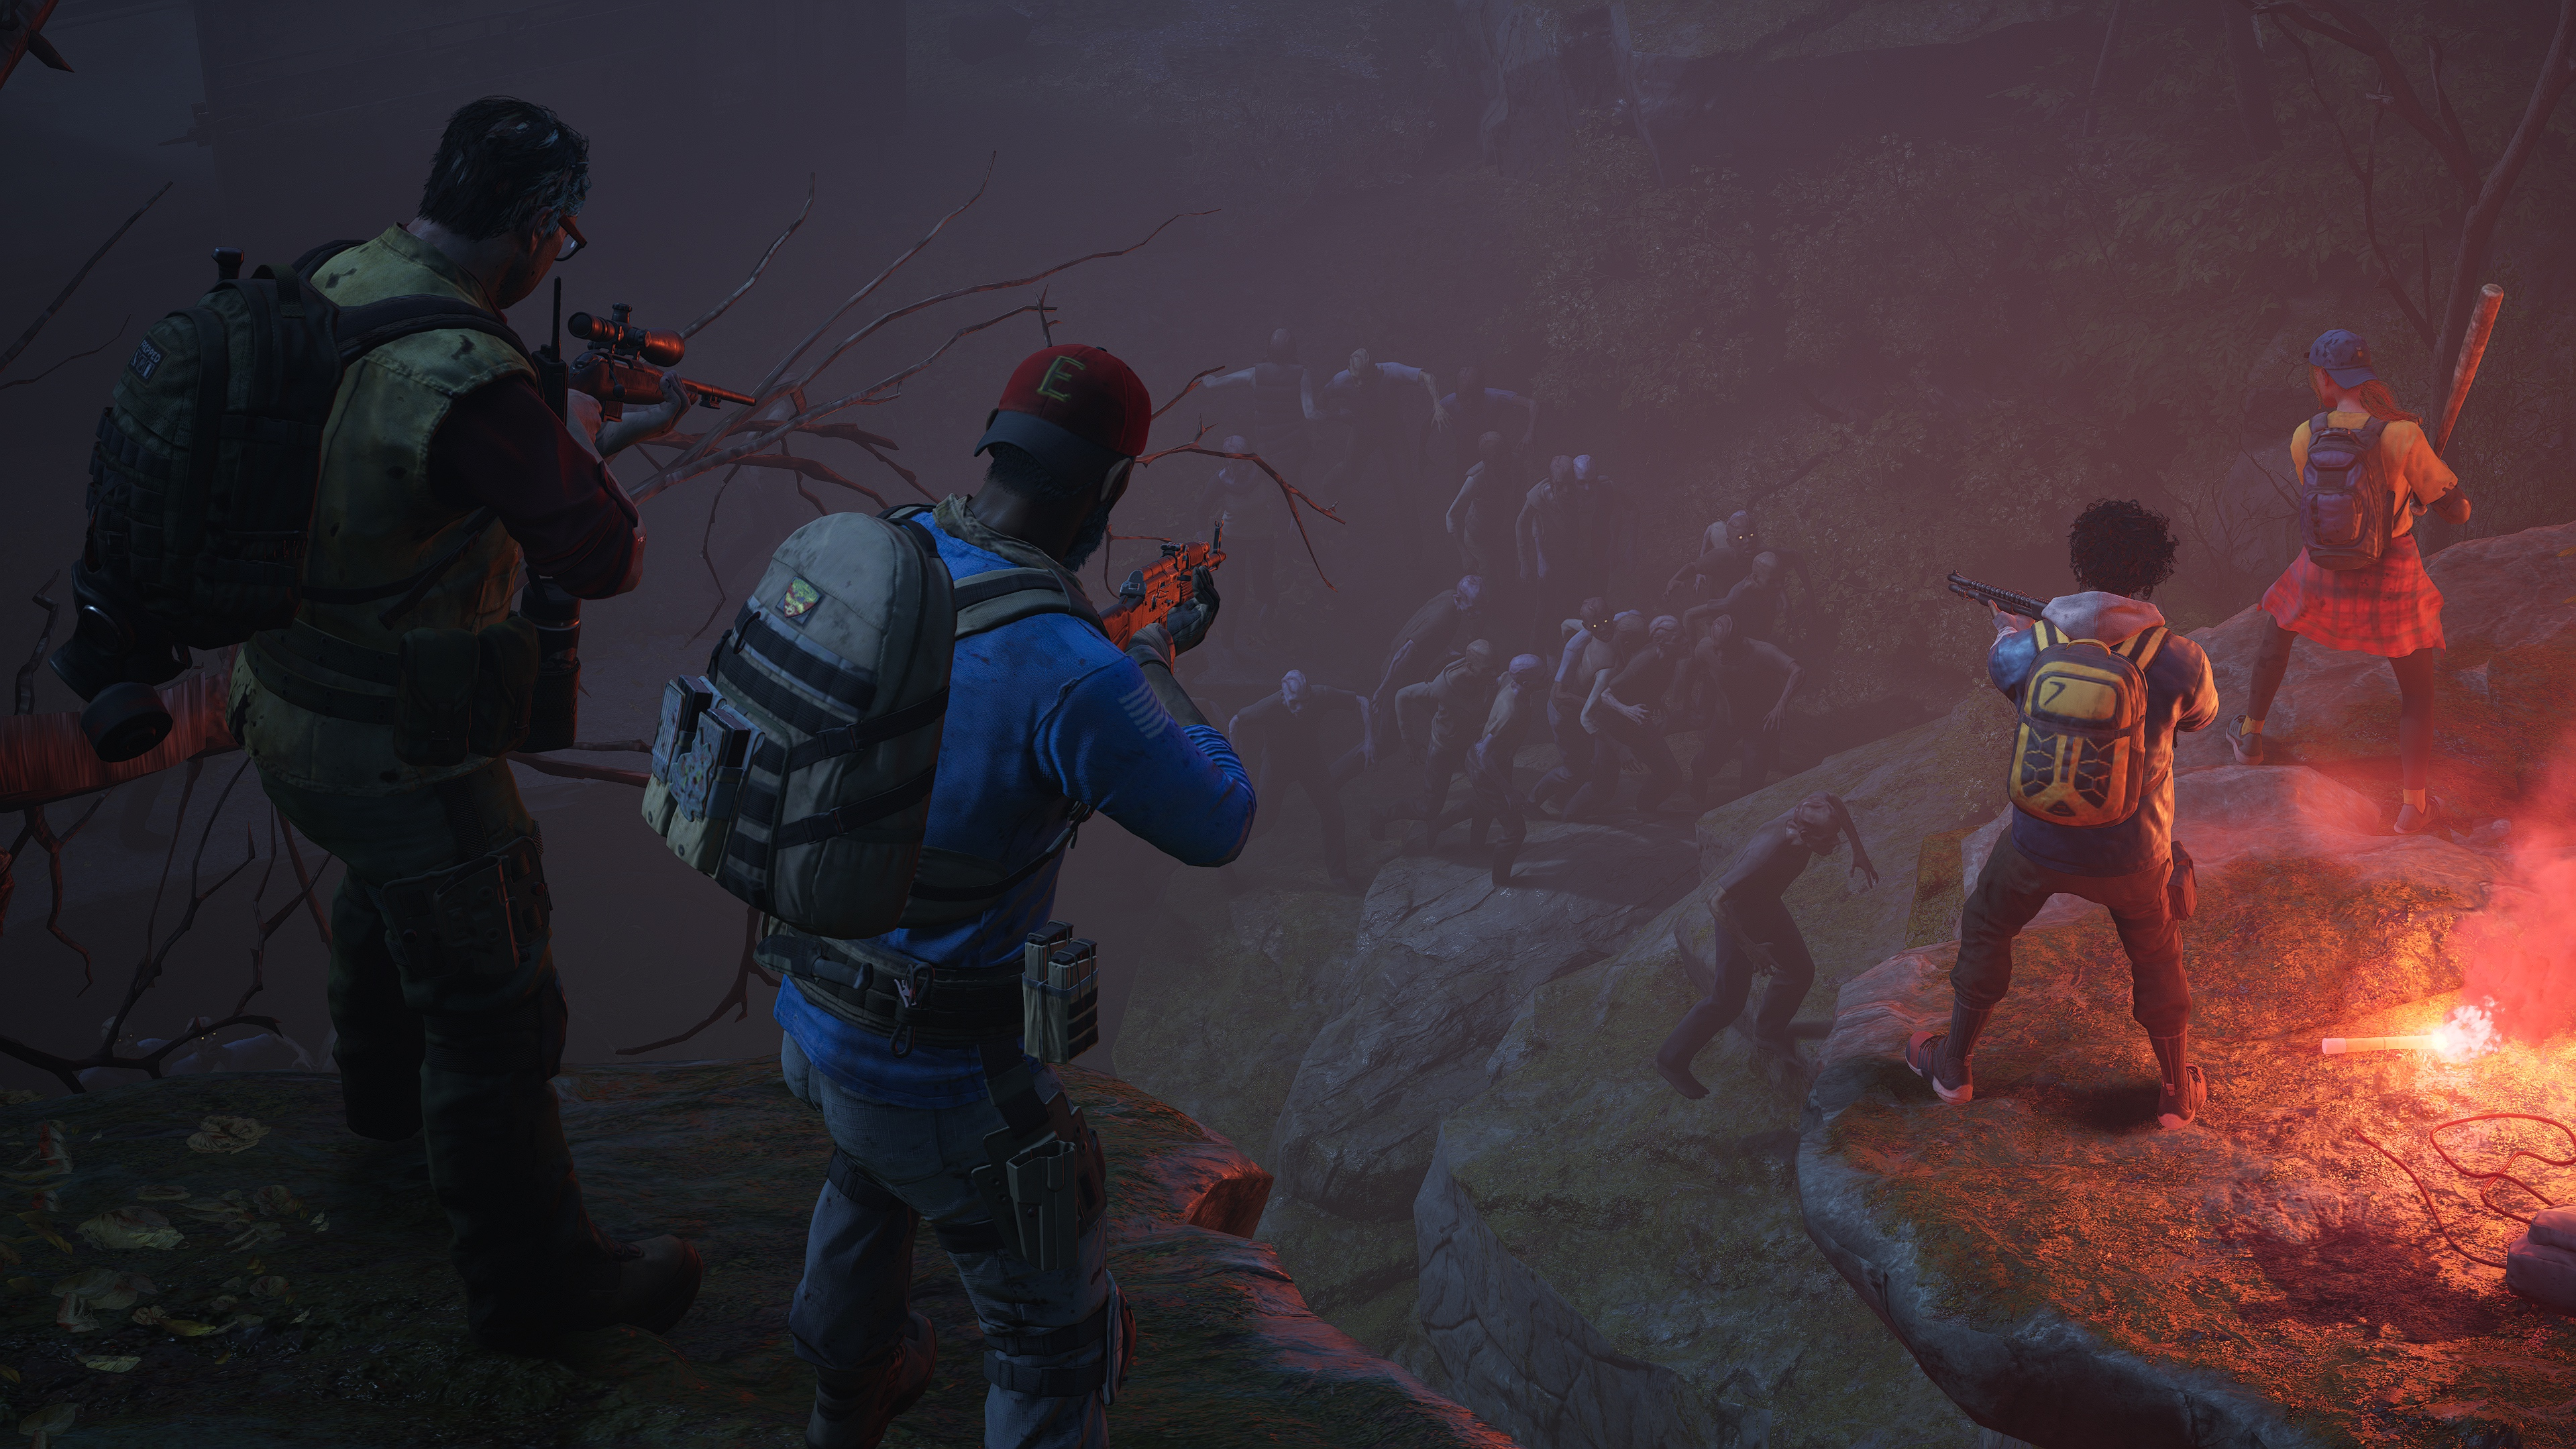 Human survivors aim at a swarm of zombies in a screenshot from Back 4 Blood